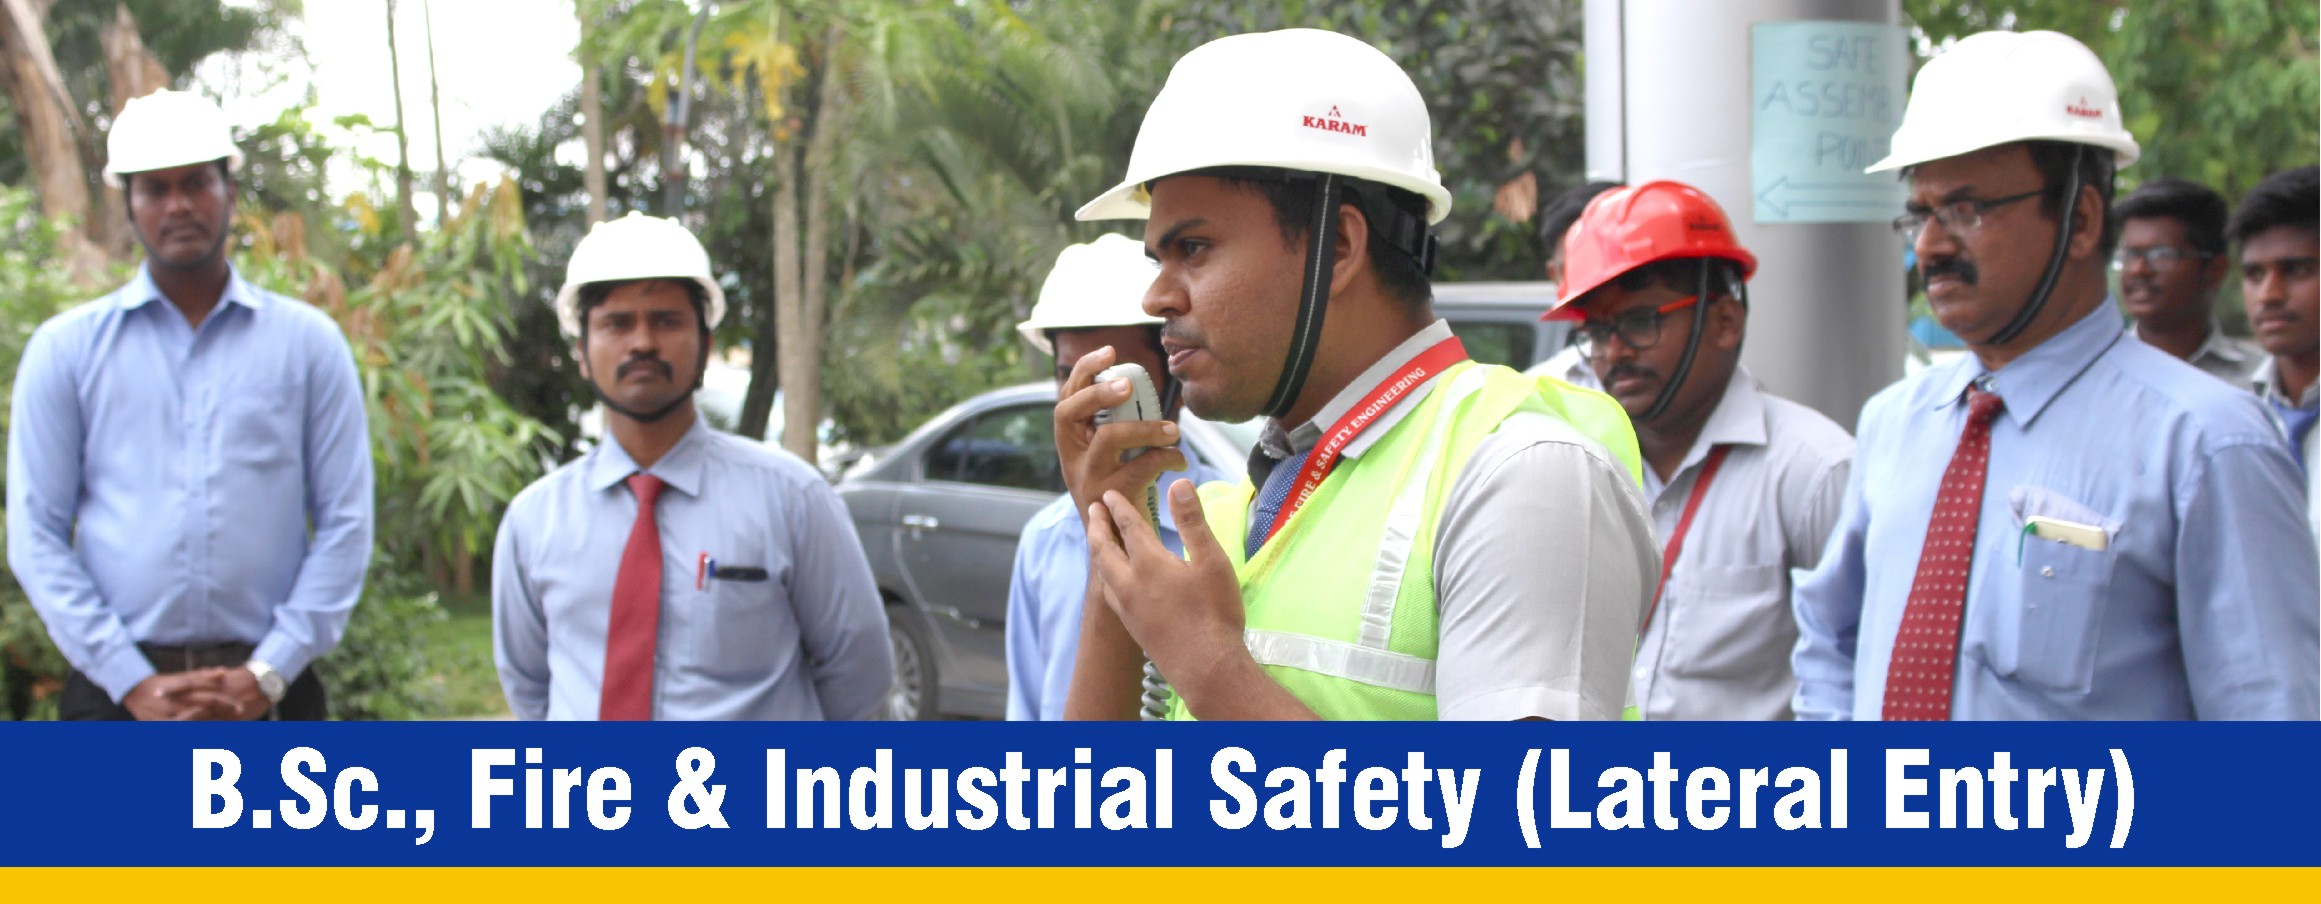 Bsc Fire and Industrial Safety Lateral Entry